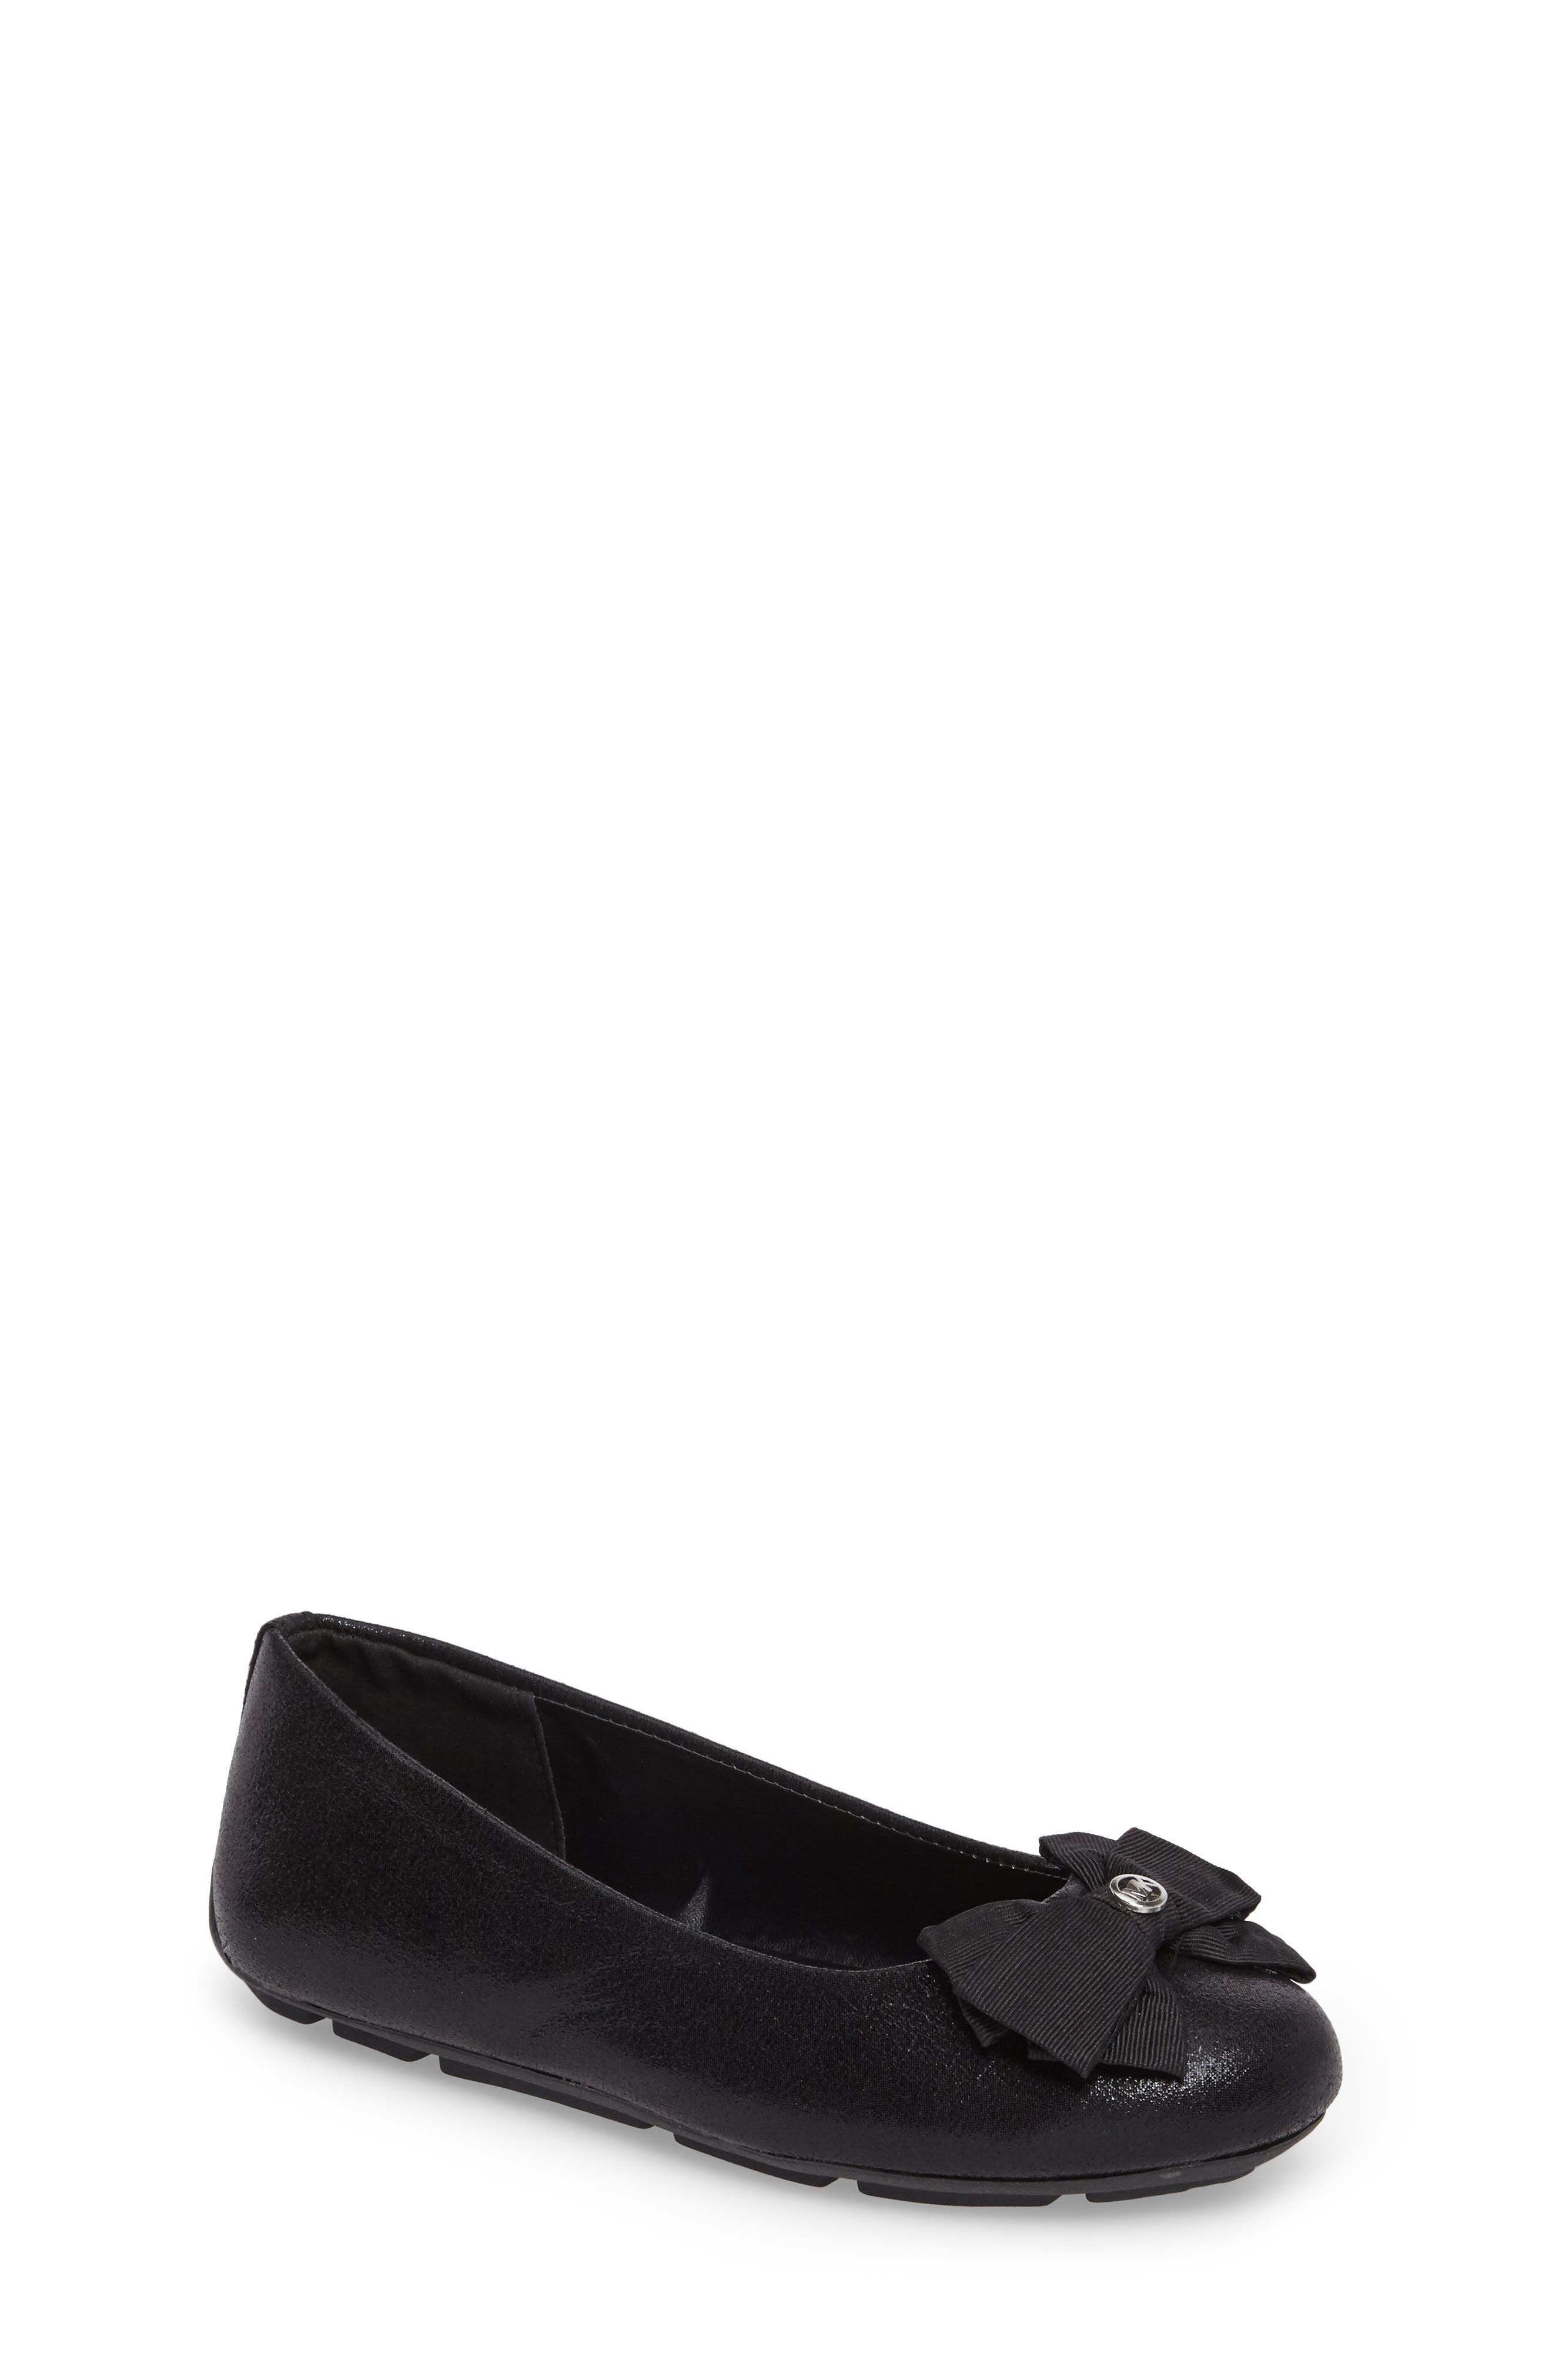 MICHAEL Michael Kors Rover Penny Bow Flat (Toddler, Little Kid & Big Kid)